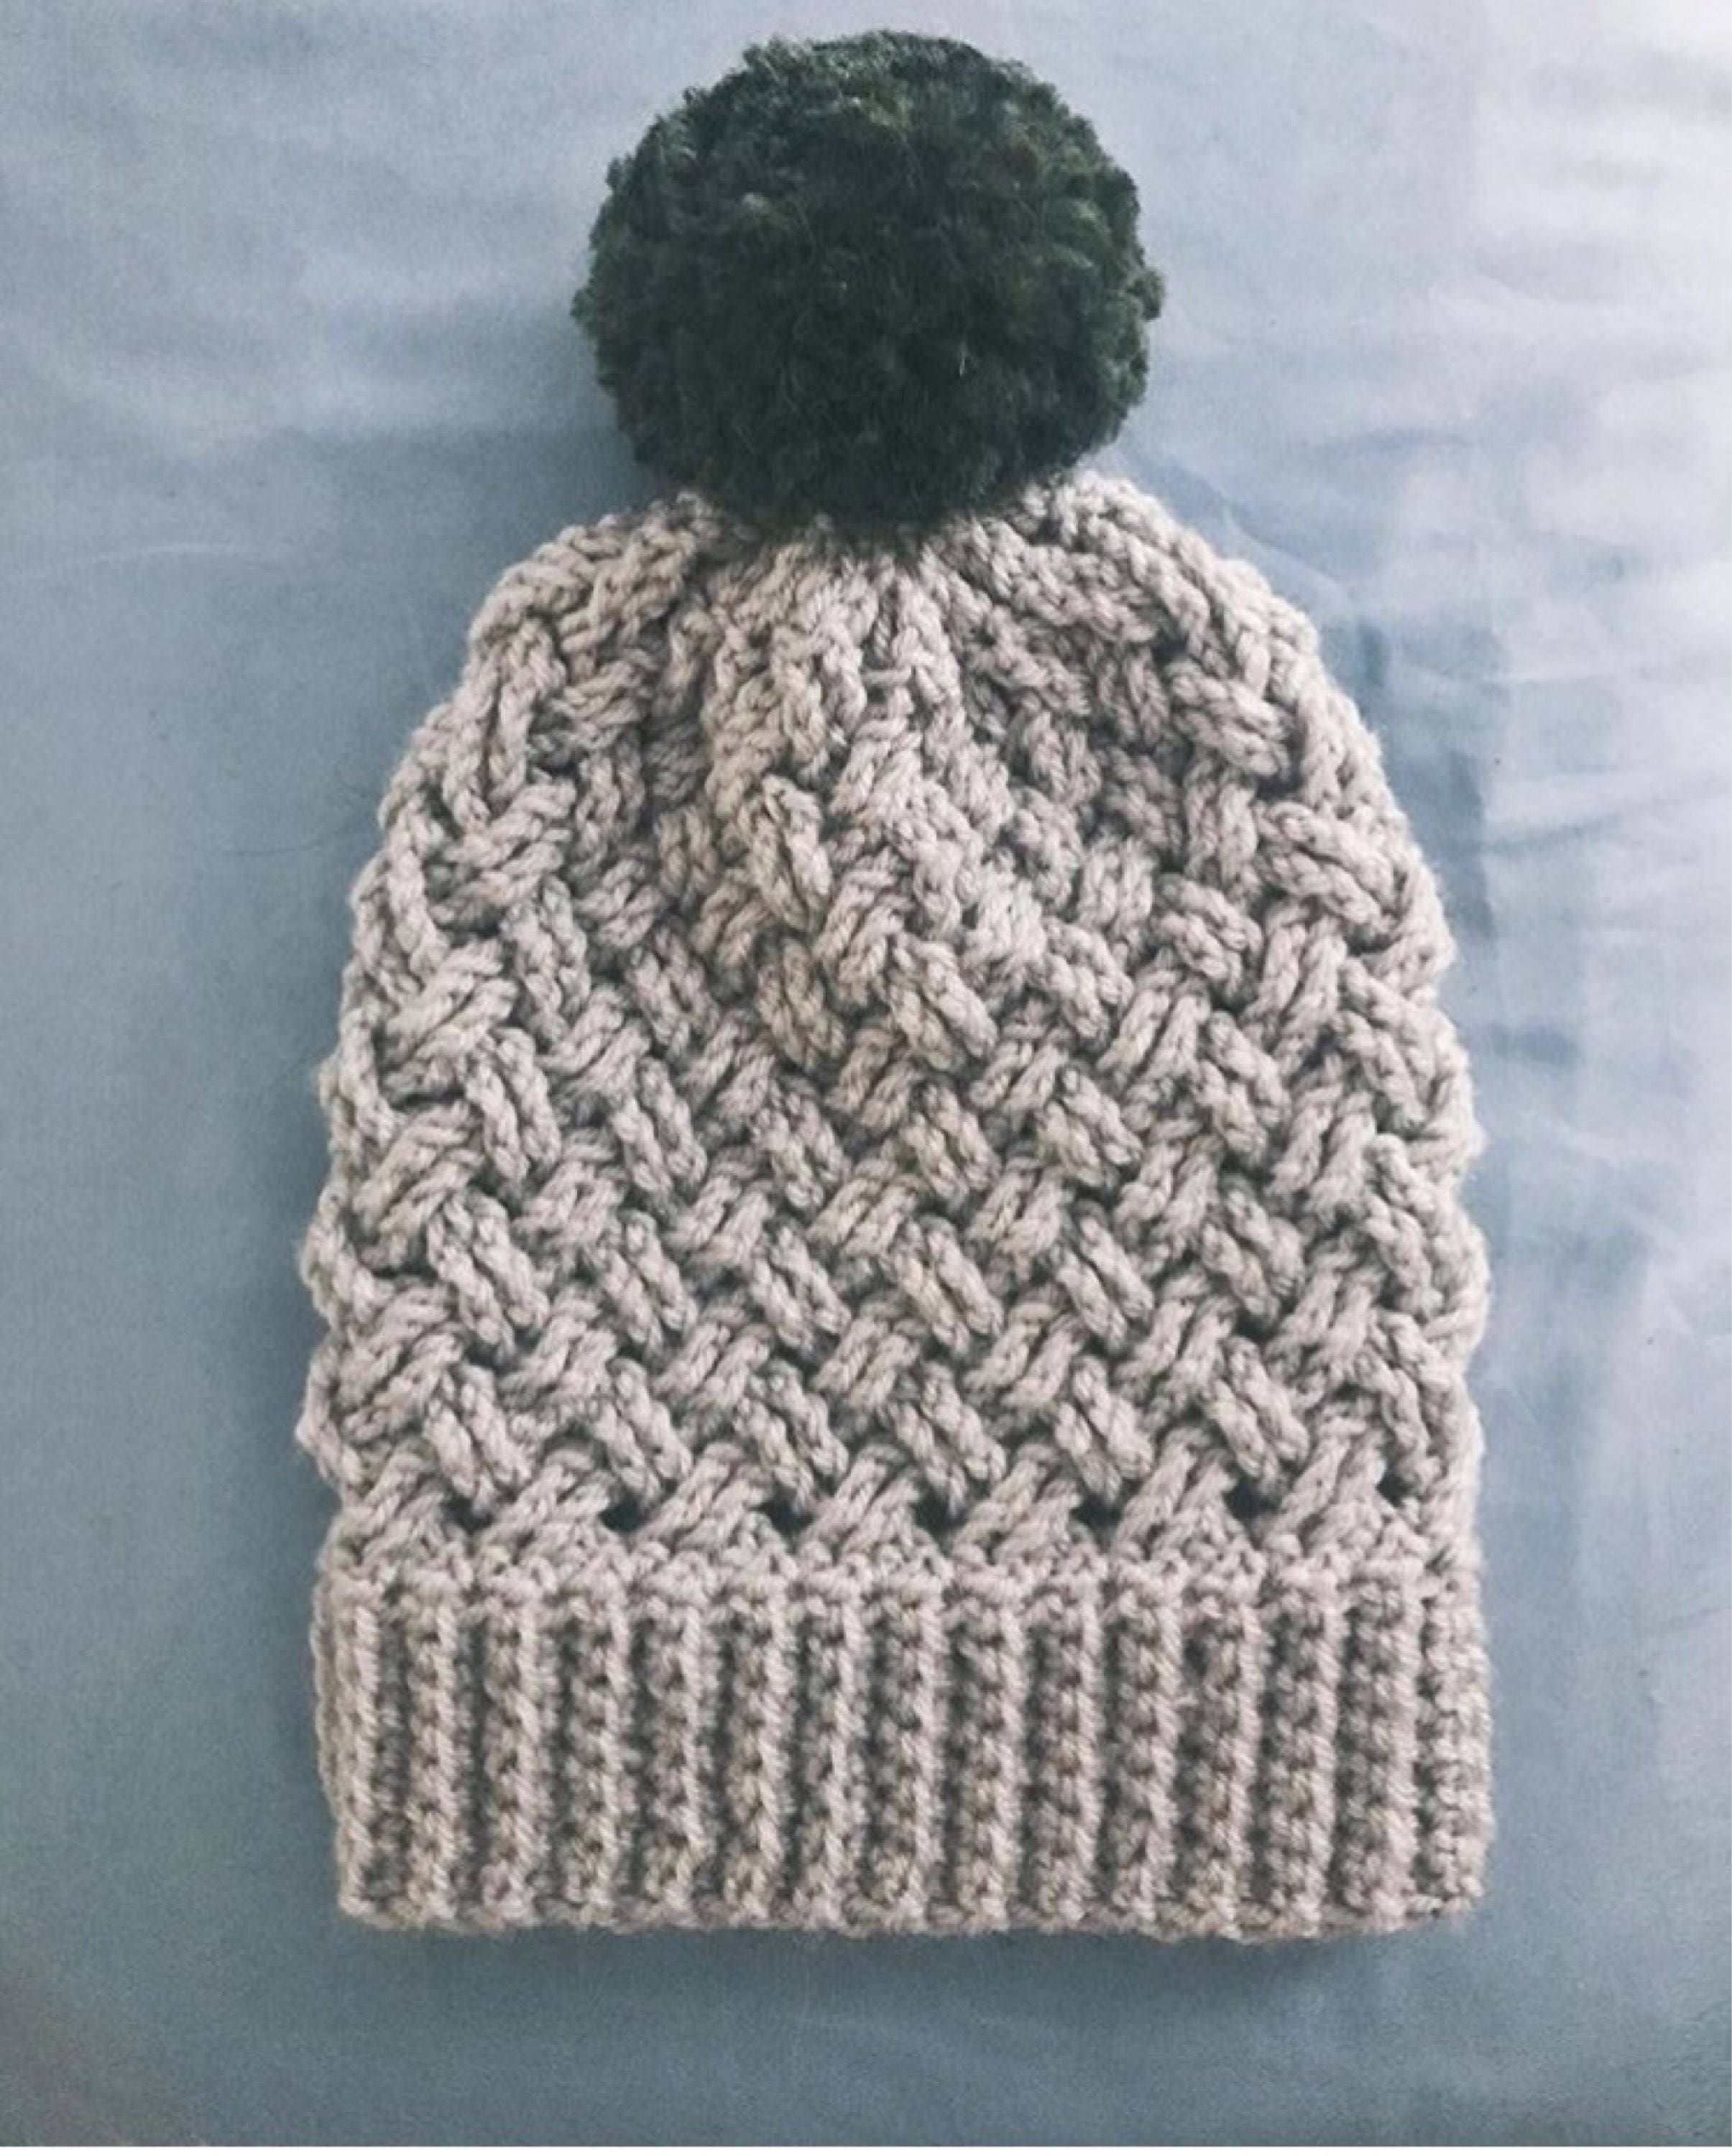 Aspen basket weave beanie crochet pattern intermediate level aspen basket weave beanie crochet pattern intermediate level crochet hat pattern bankloansurffo Choice Image